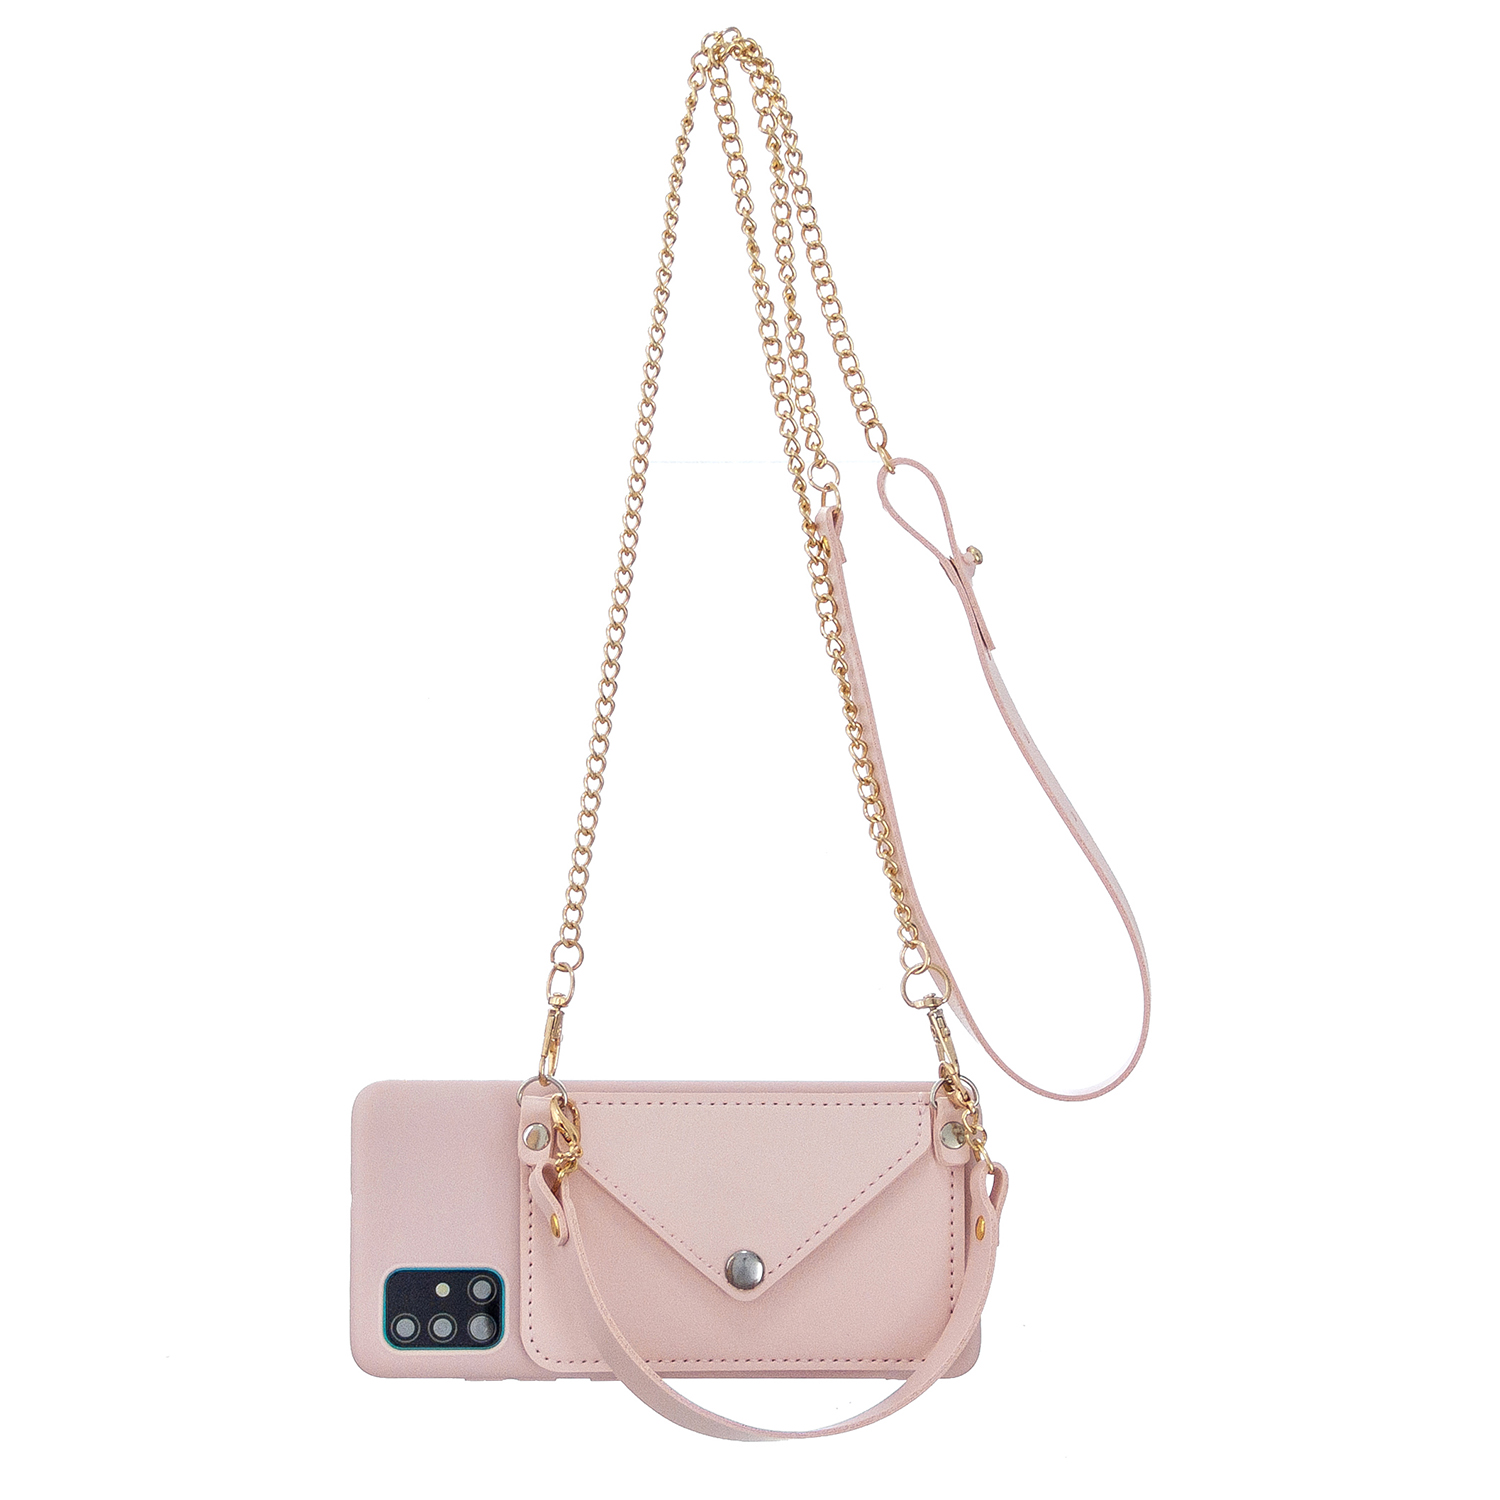 For HUAWEI P40/P40 Lite/P40 Pro Mobile Phone Cover with Pu Leather Card Holder + Hand Rope + Straddle Rope Pink